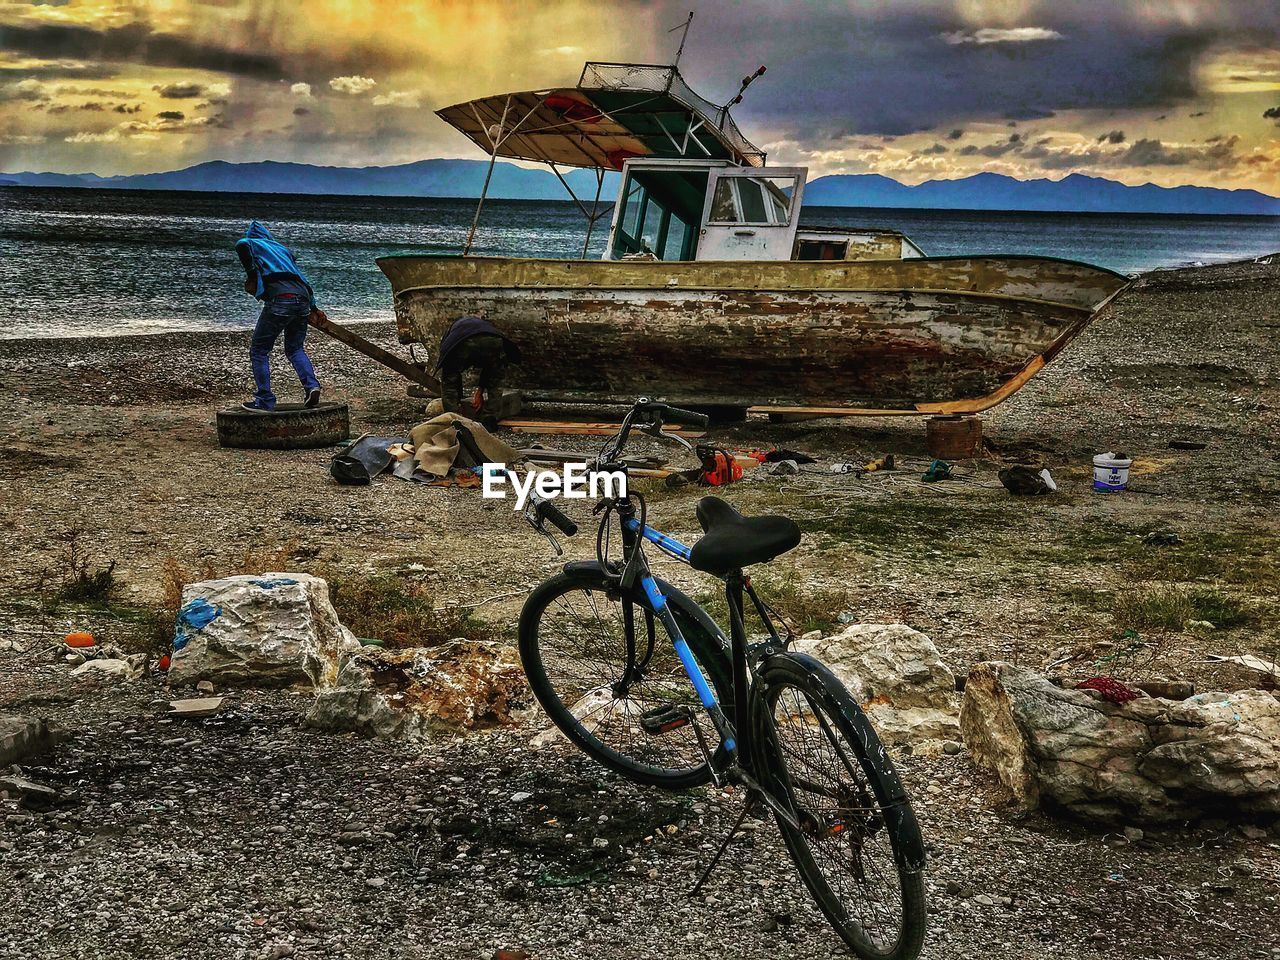 transportation, bicycle, mode of transportation, water, land, sea, land vehicle, beach, men, real people, sky, full length, nature, people, cloud - sky, day, nautical vessel, outdoors, activity